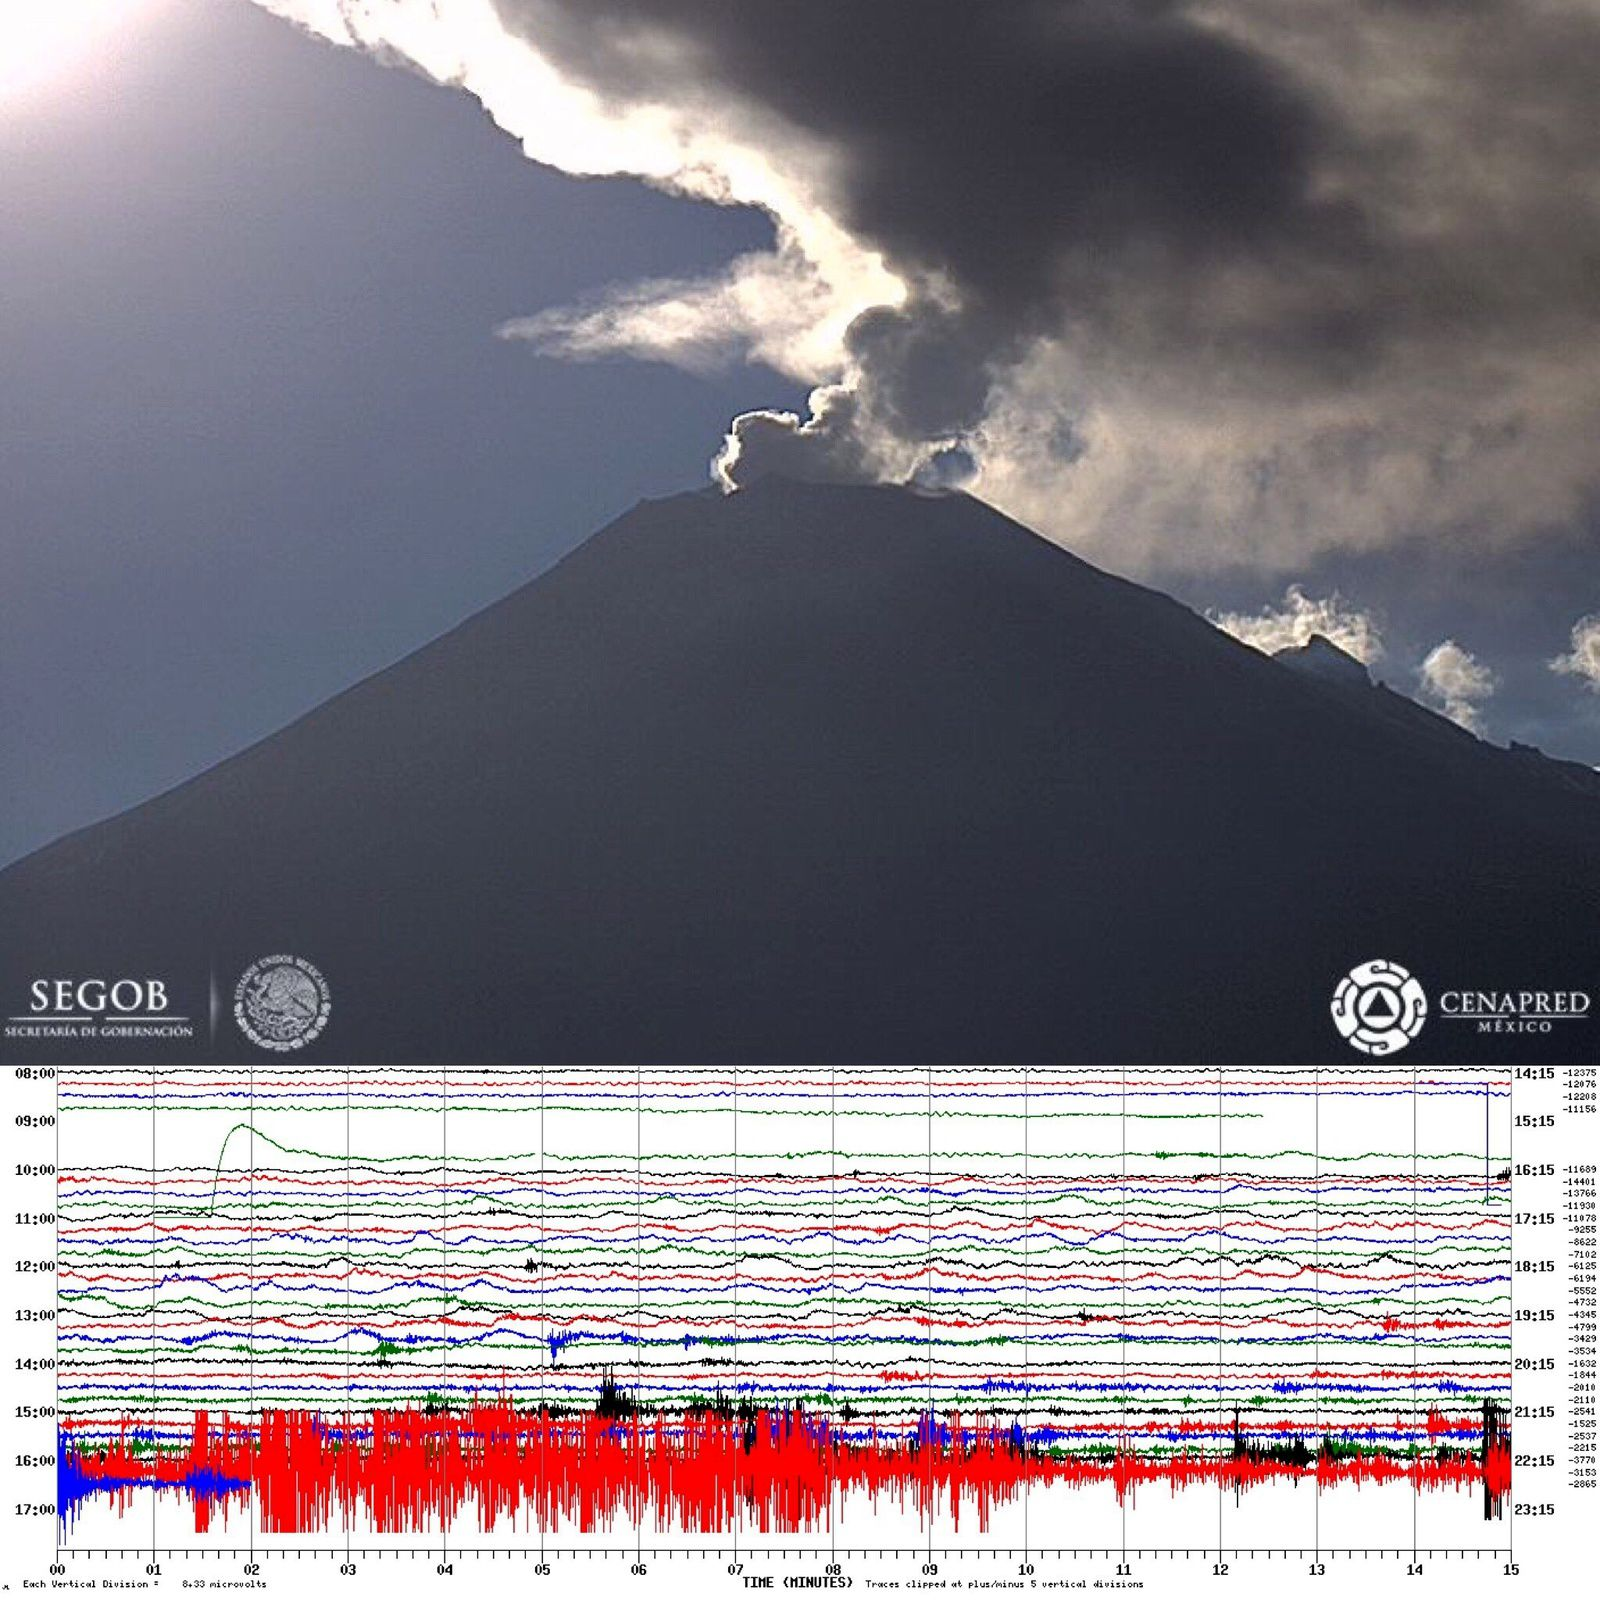 Popocatépetl - increase in seismic activity accompanied by emissions of gas, steam and ashes - Cenapred photo 20.11.2018